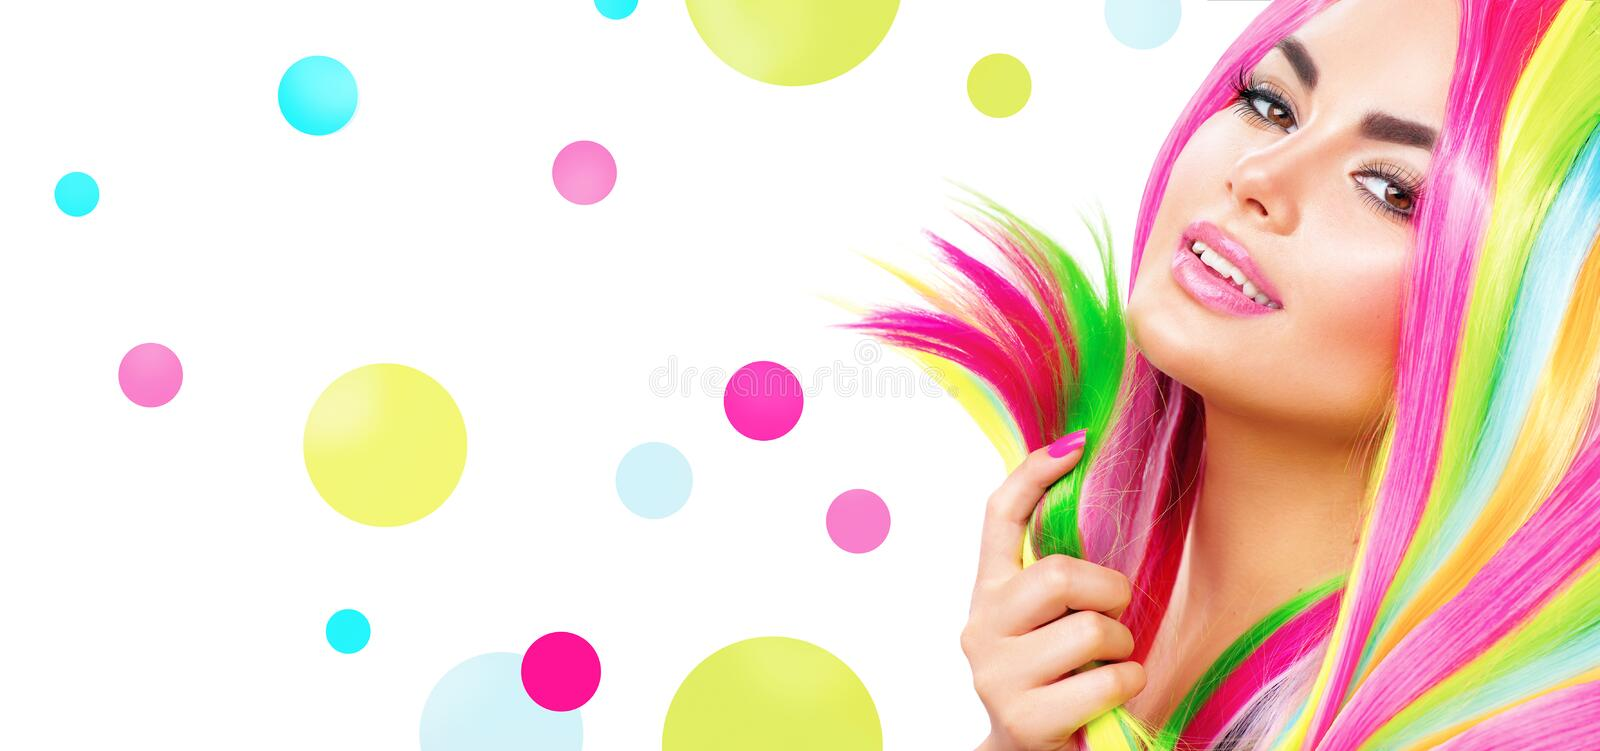 Beauty girl portrait with colorful makeup. Hair and nail polish stock photos